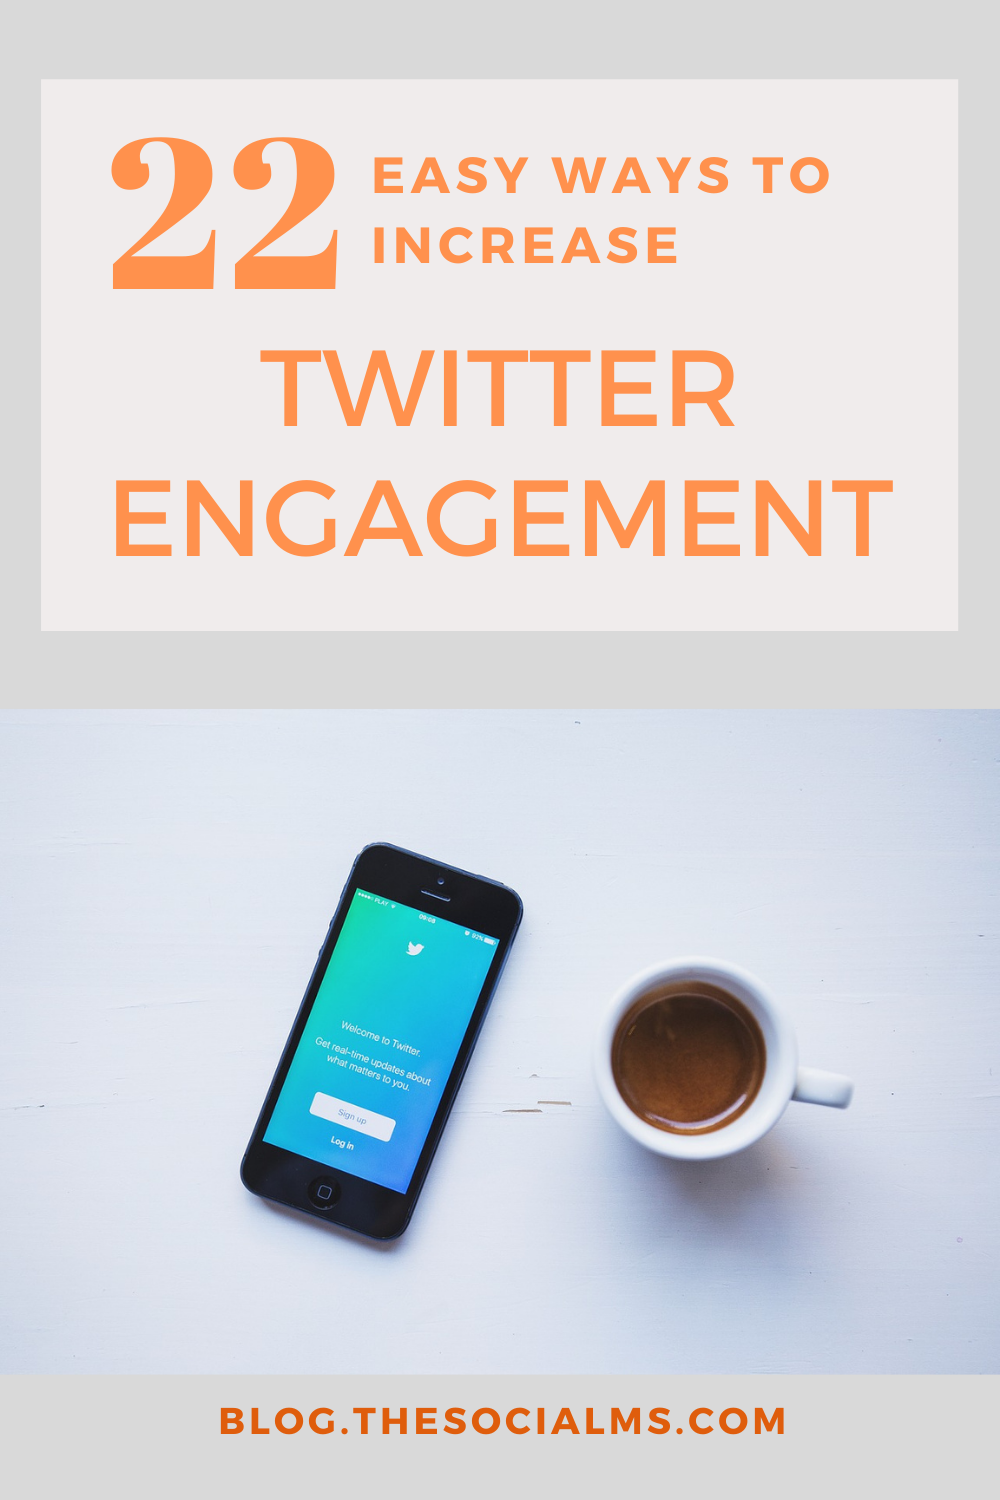 Engagement is crucial for social media marketing success. Here are 22 ways to increase engagement on Twitter that help you build trust and loyalty. Find more social media success with more engagement. #twitter #socialmedia #socialmediatips #socialmediamarketing #socialmediaengagement